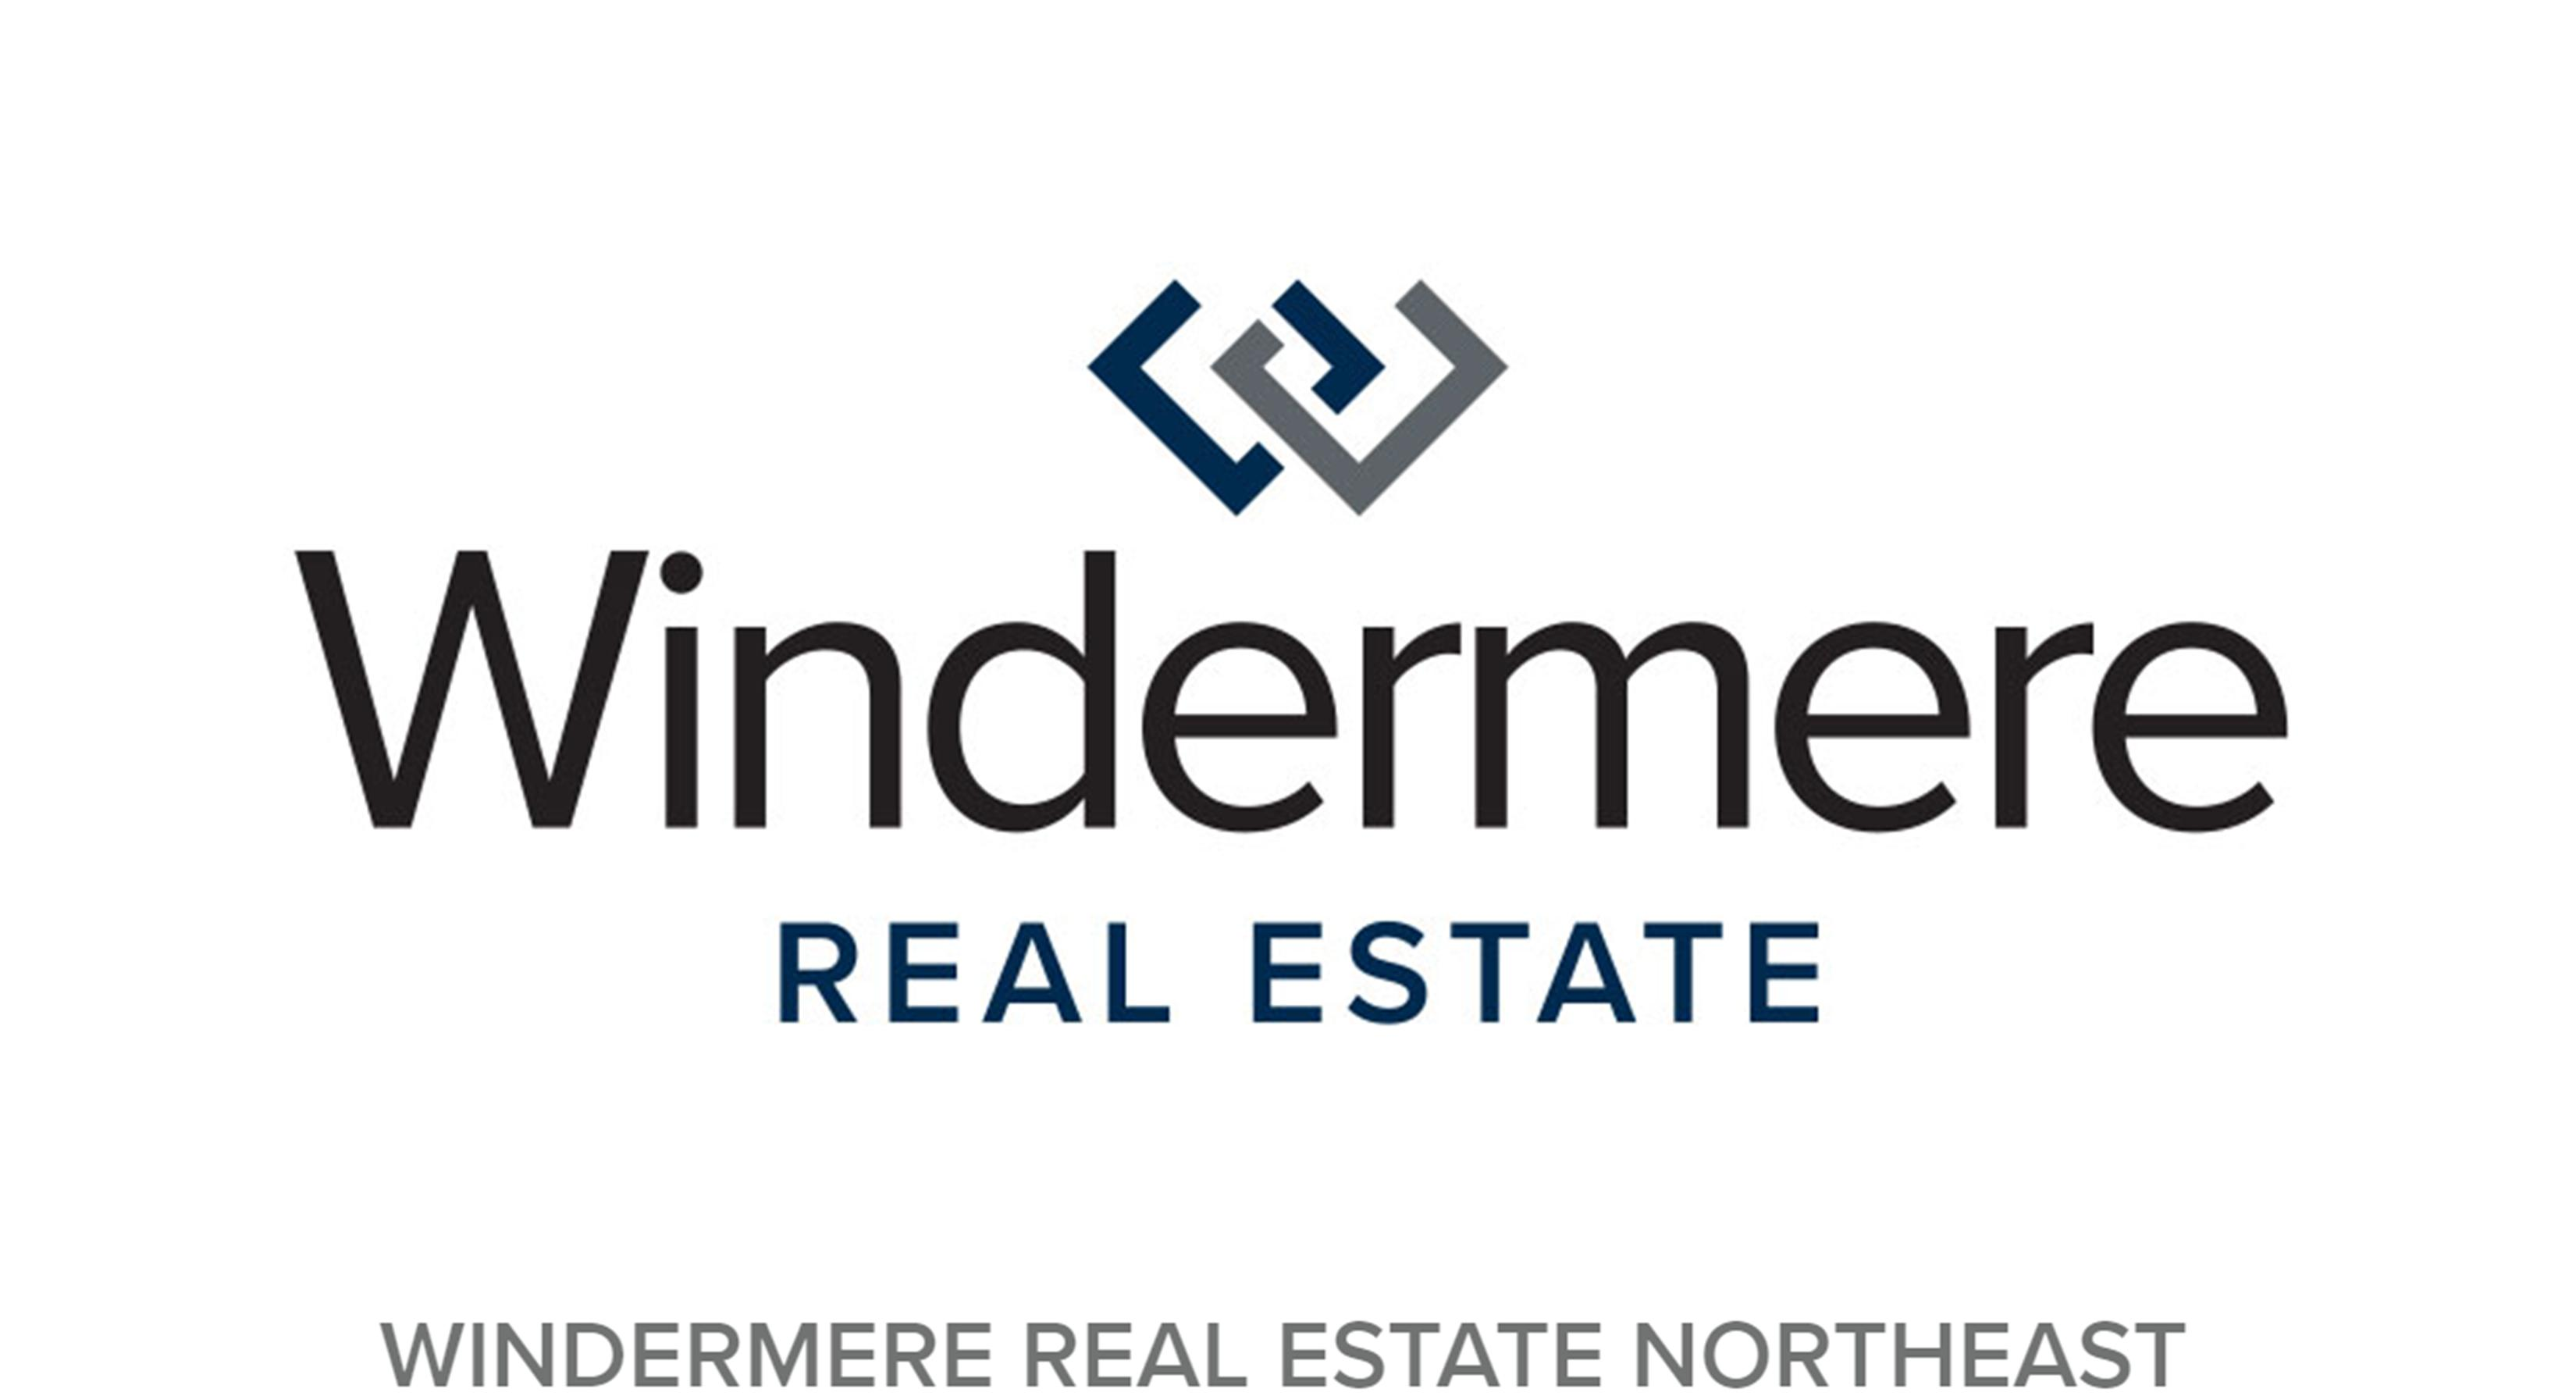 Windermere Northeast